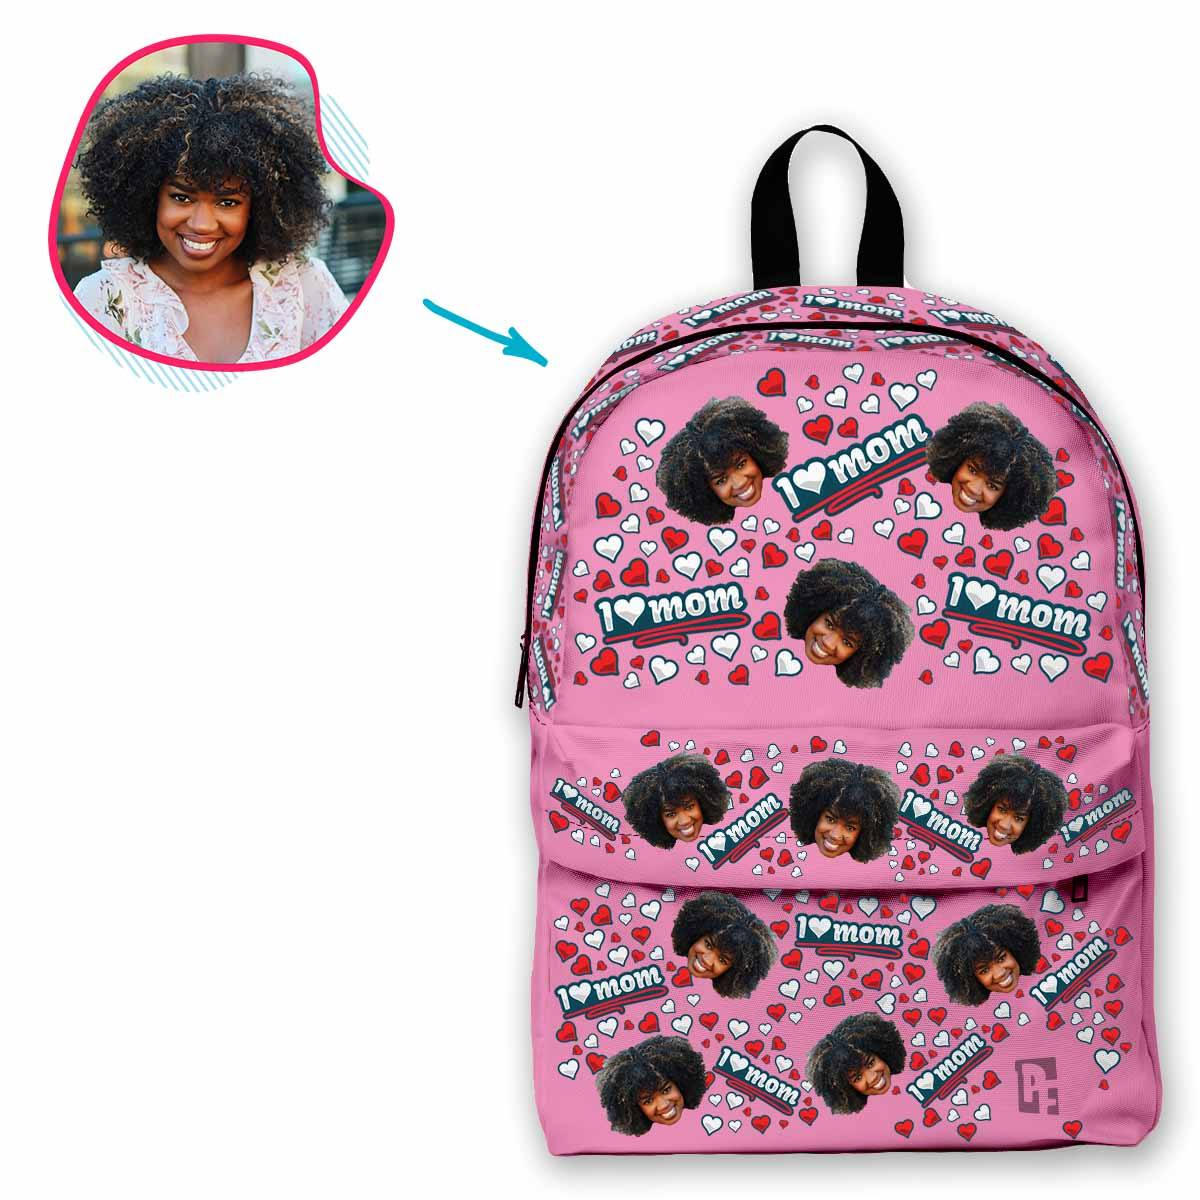 pink Love Mom classic backpack personalized with photo of face printed on it